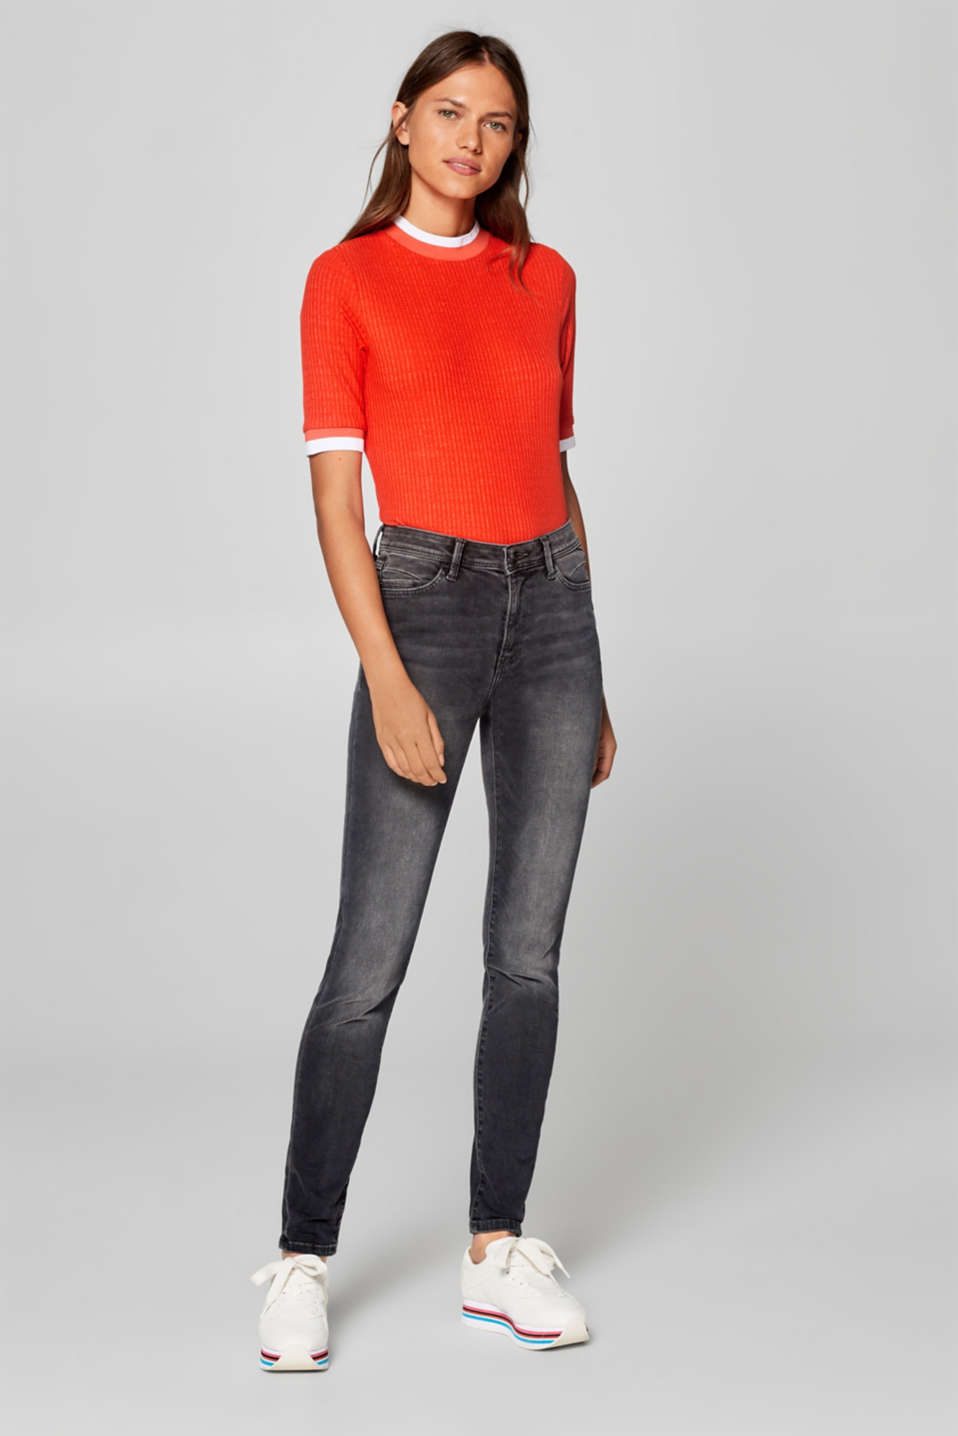 Esprit - Figure-shaping jeans with garment-washed effects